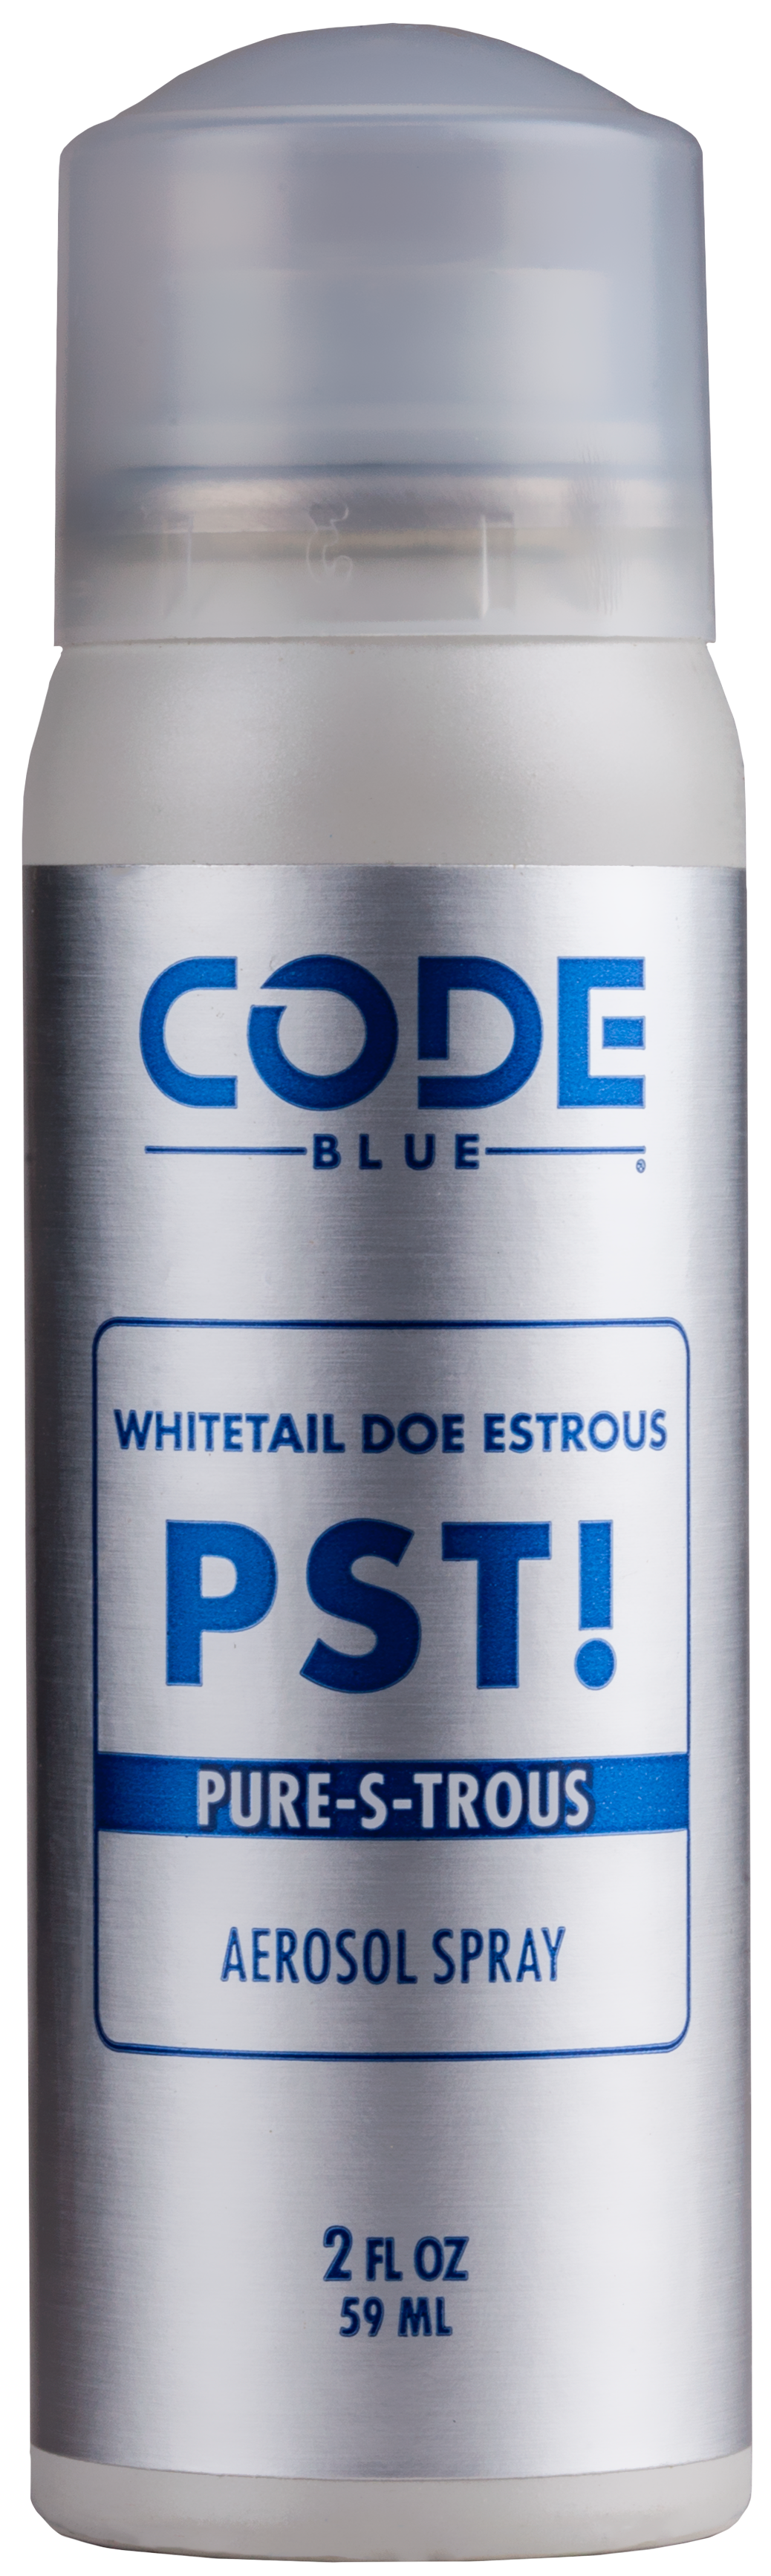 Code Blue Whitetail Deer Scent 2 oz Aerosol Spray